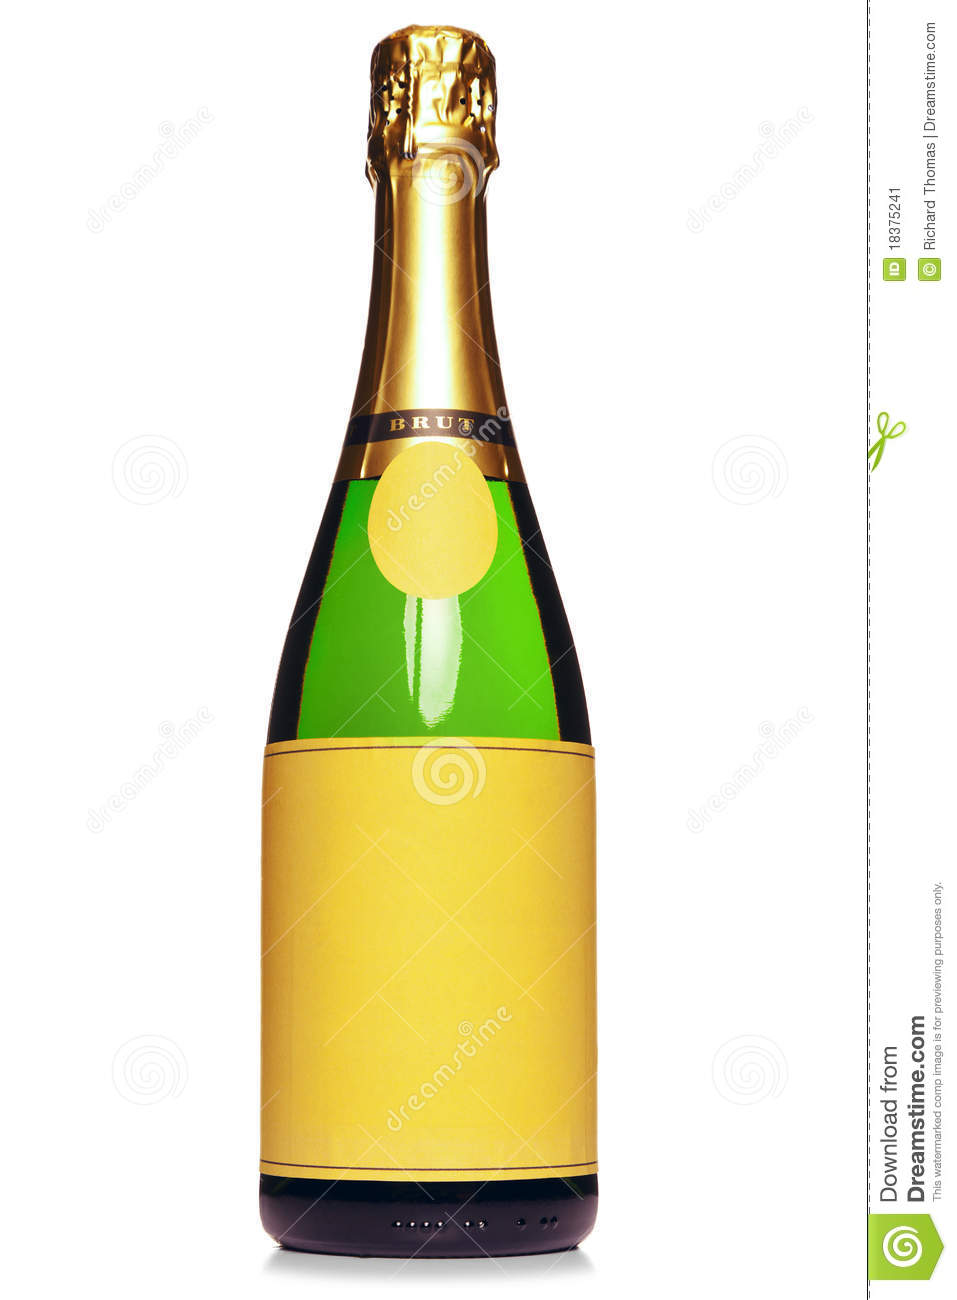 Free Champagne Bottle Cliparts, Download Free Clip Art, Free Clip.